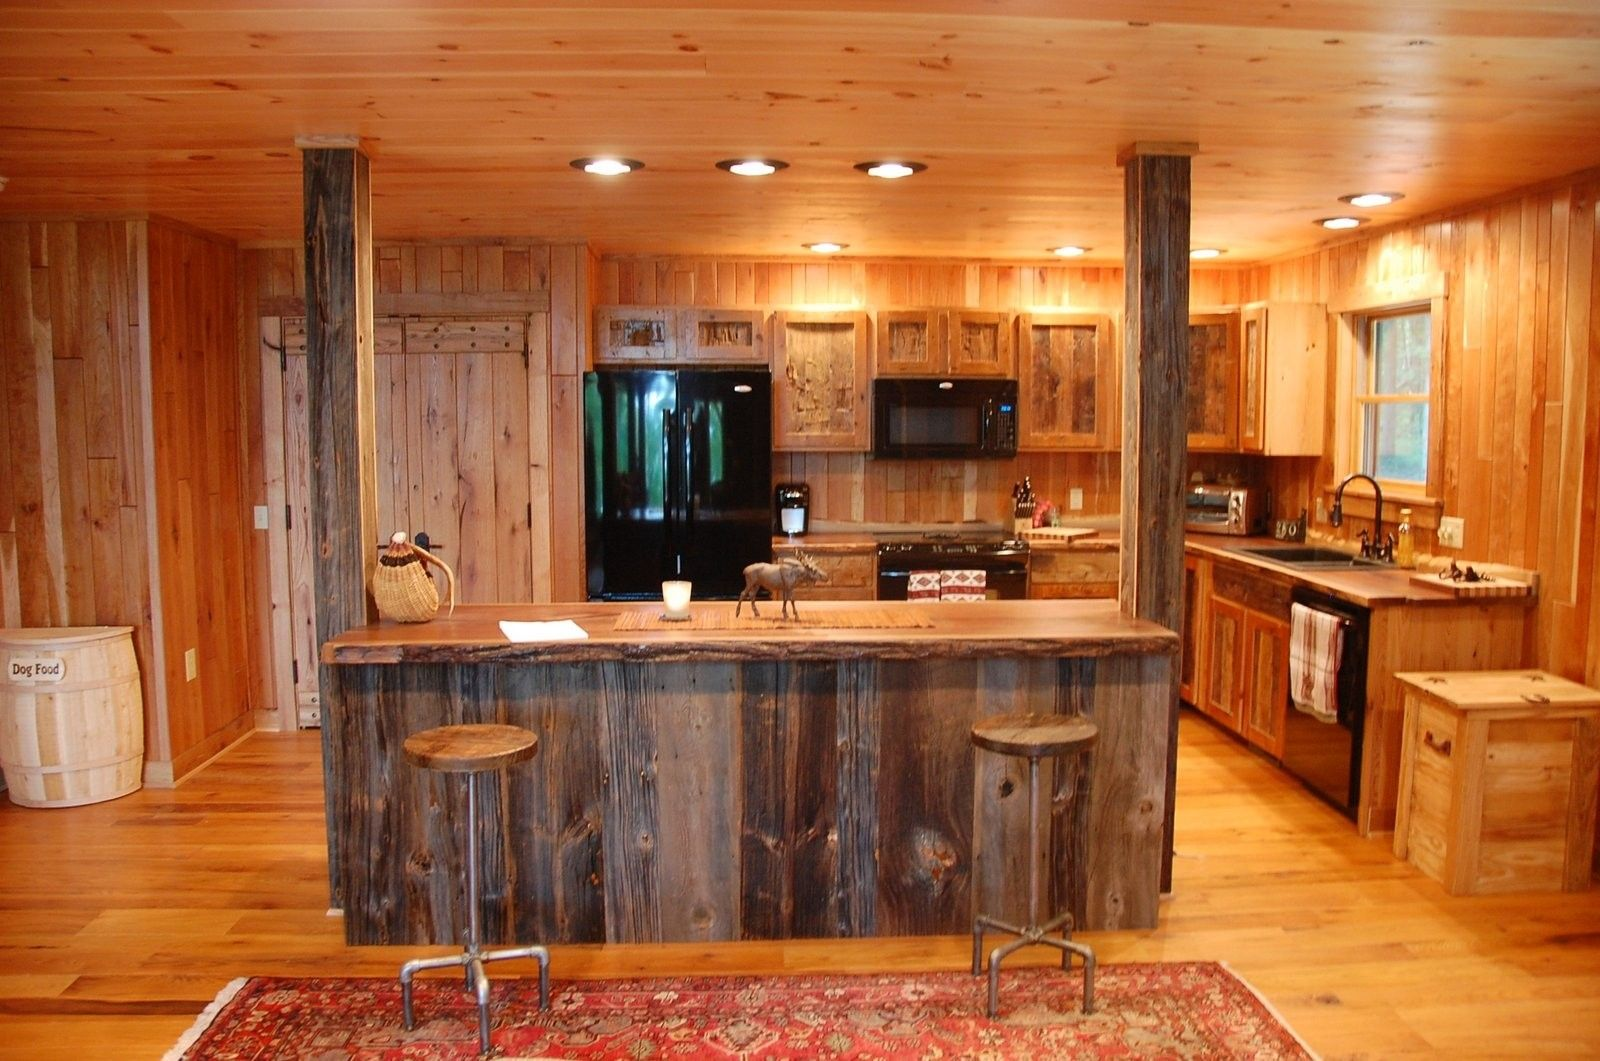 Custom Made Reclaimed Wood Rustic Kitchen Cabinets By Corey Morgan